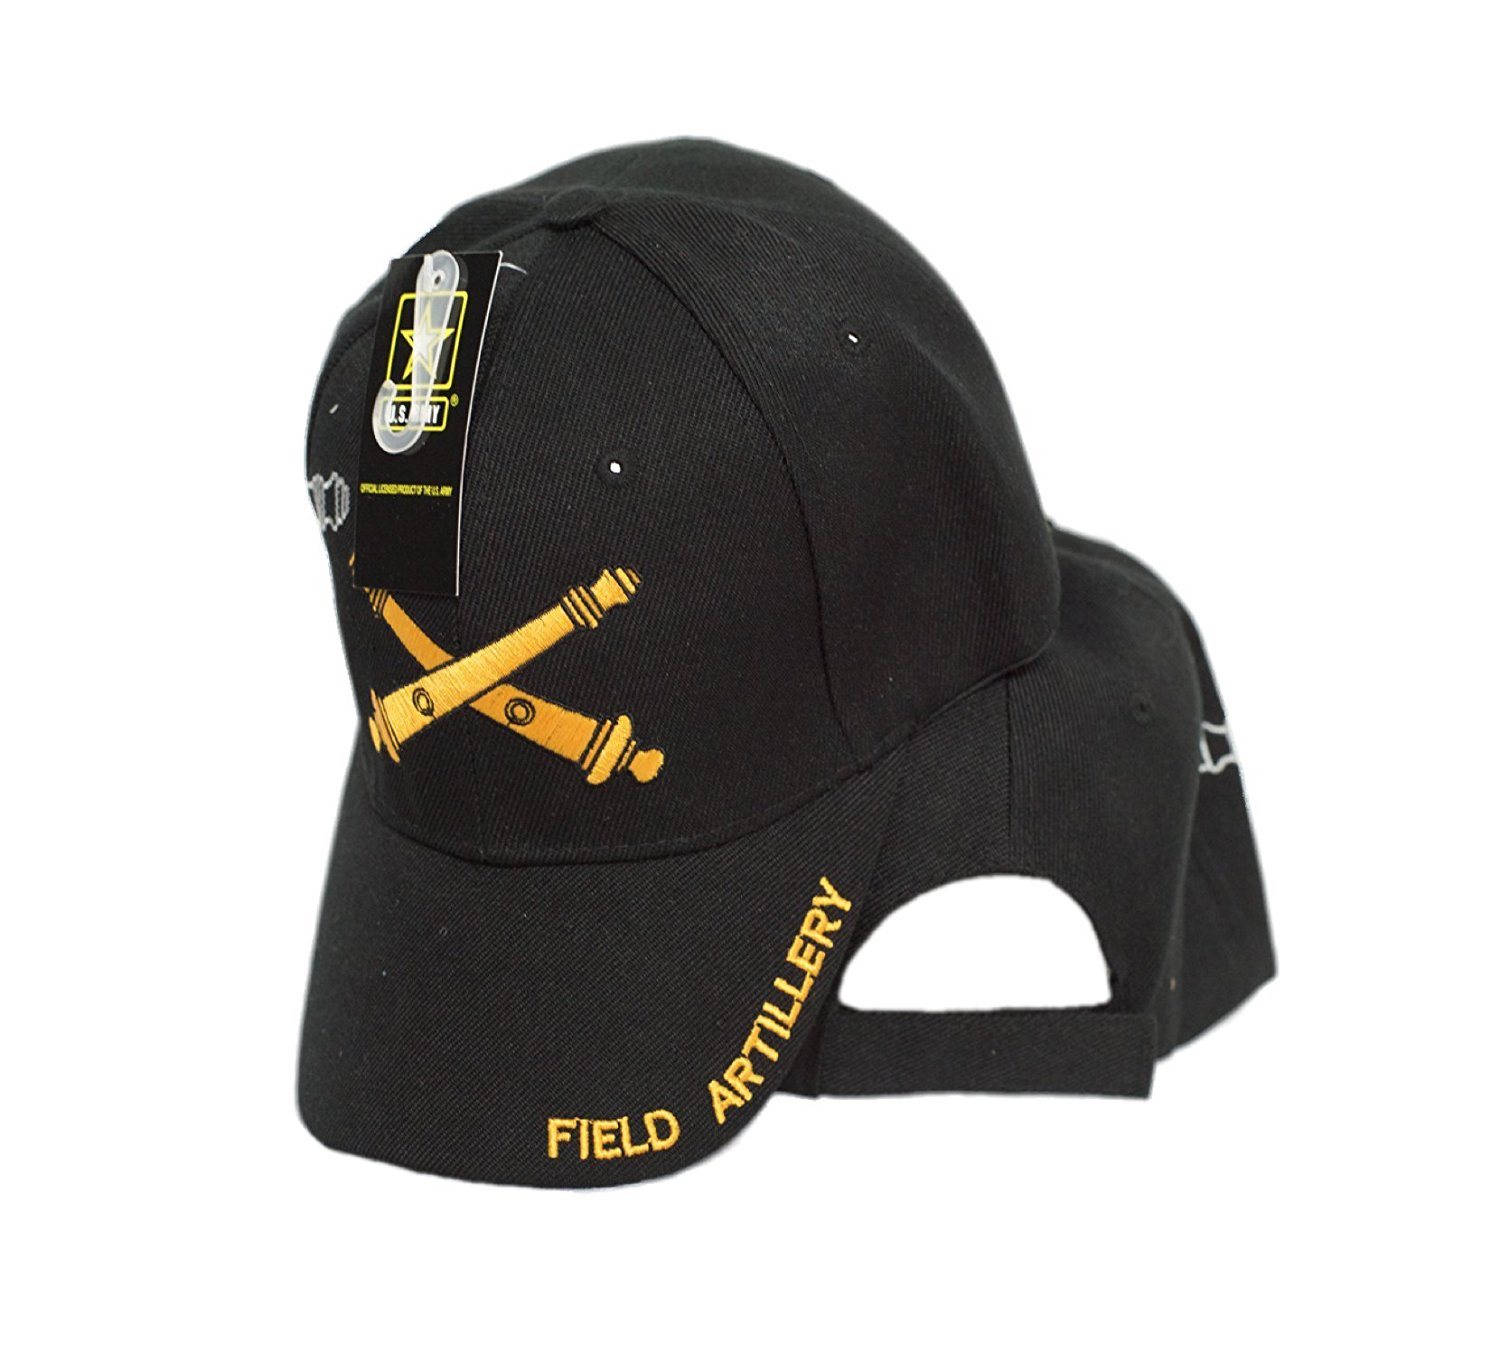 MWS Field Artillery Weapons Cannons Army Licensed Embroidered Cap Hat